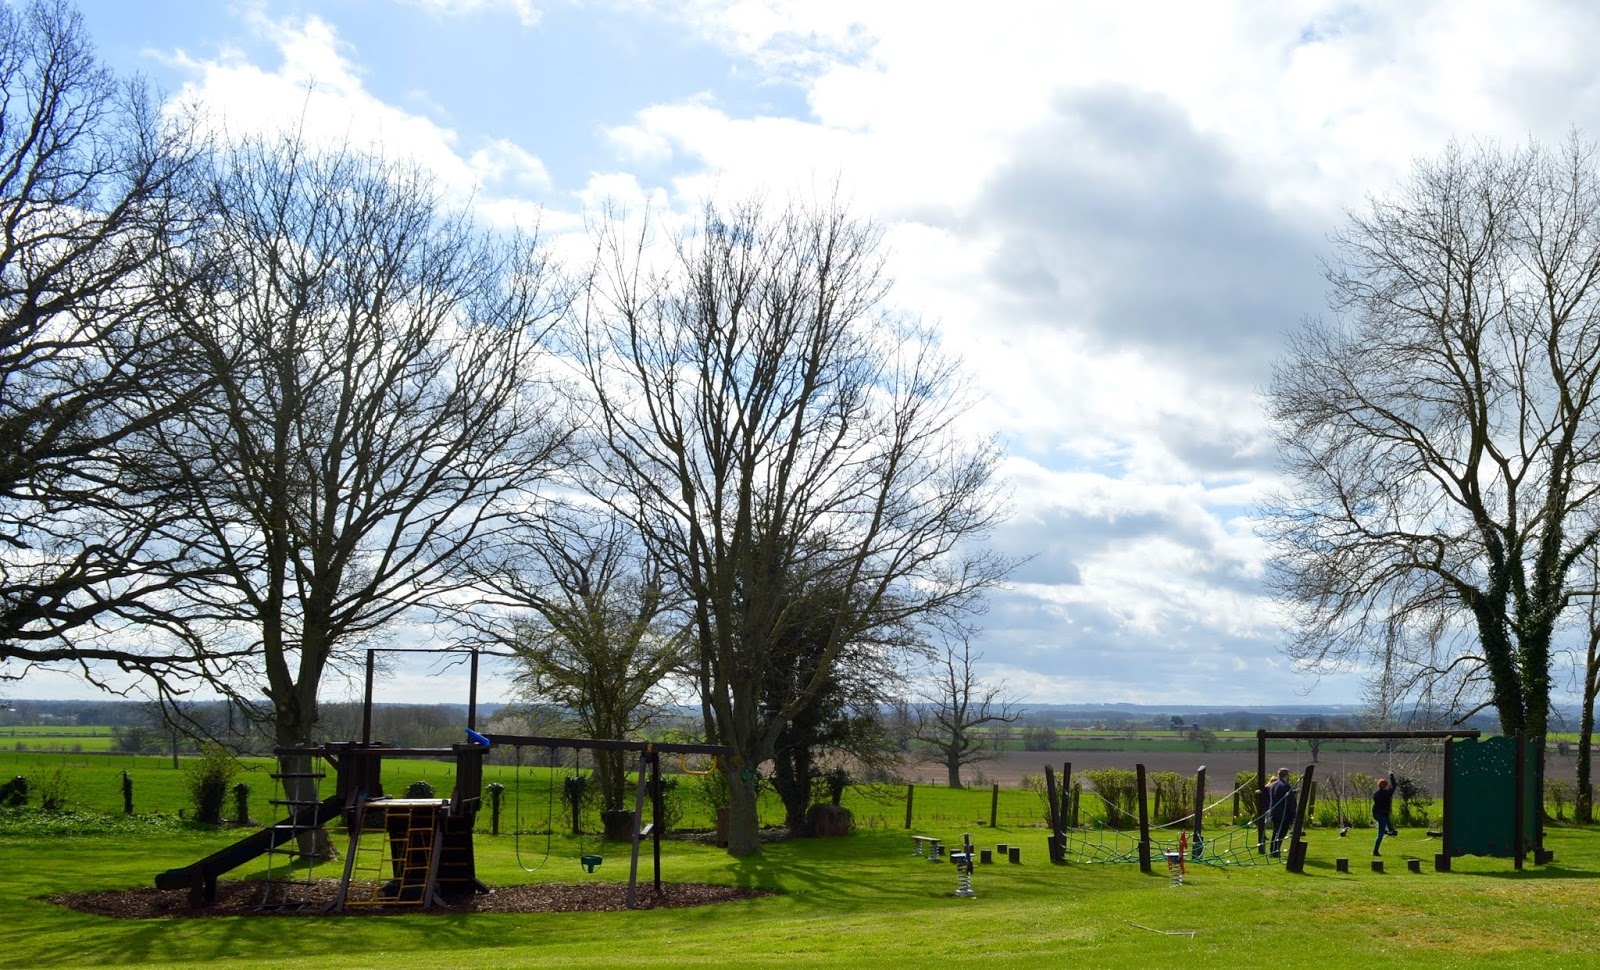 Sunday Lunch, Playgrounds & Birds of Prey at Walworth Castle, Darlington  - countryside views and park